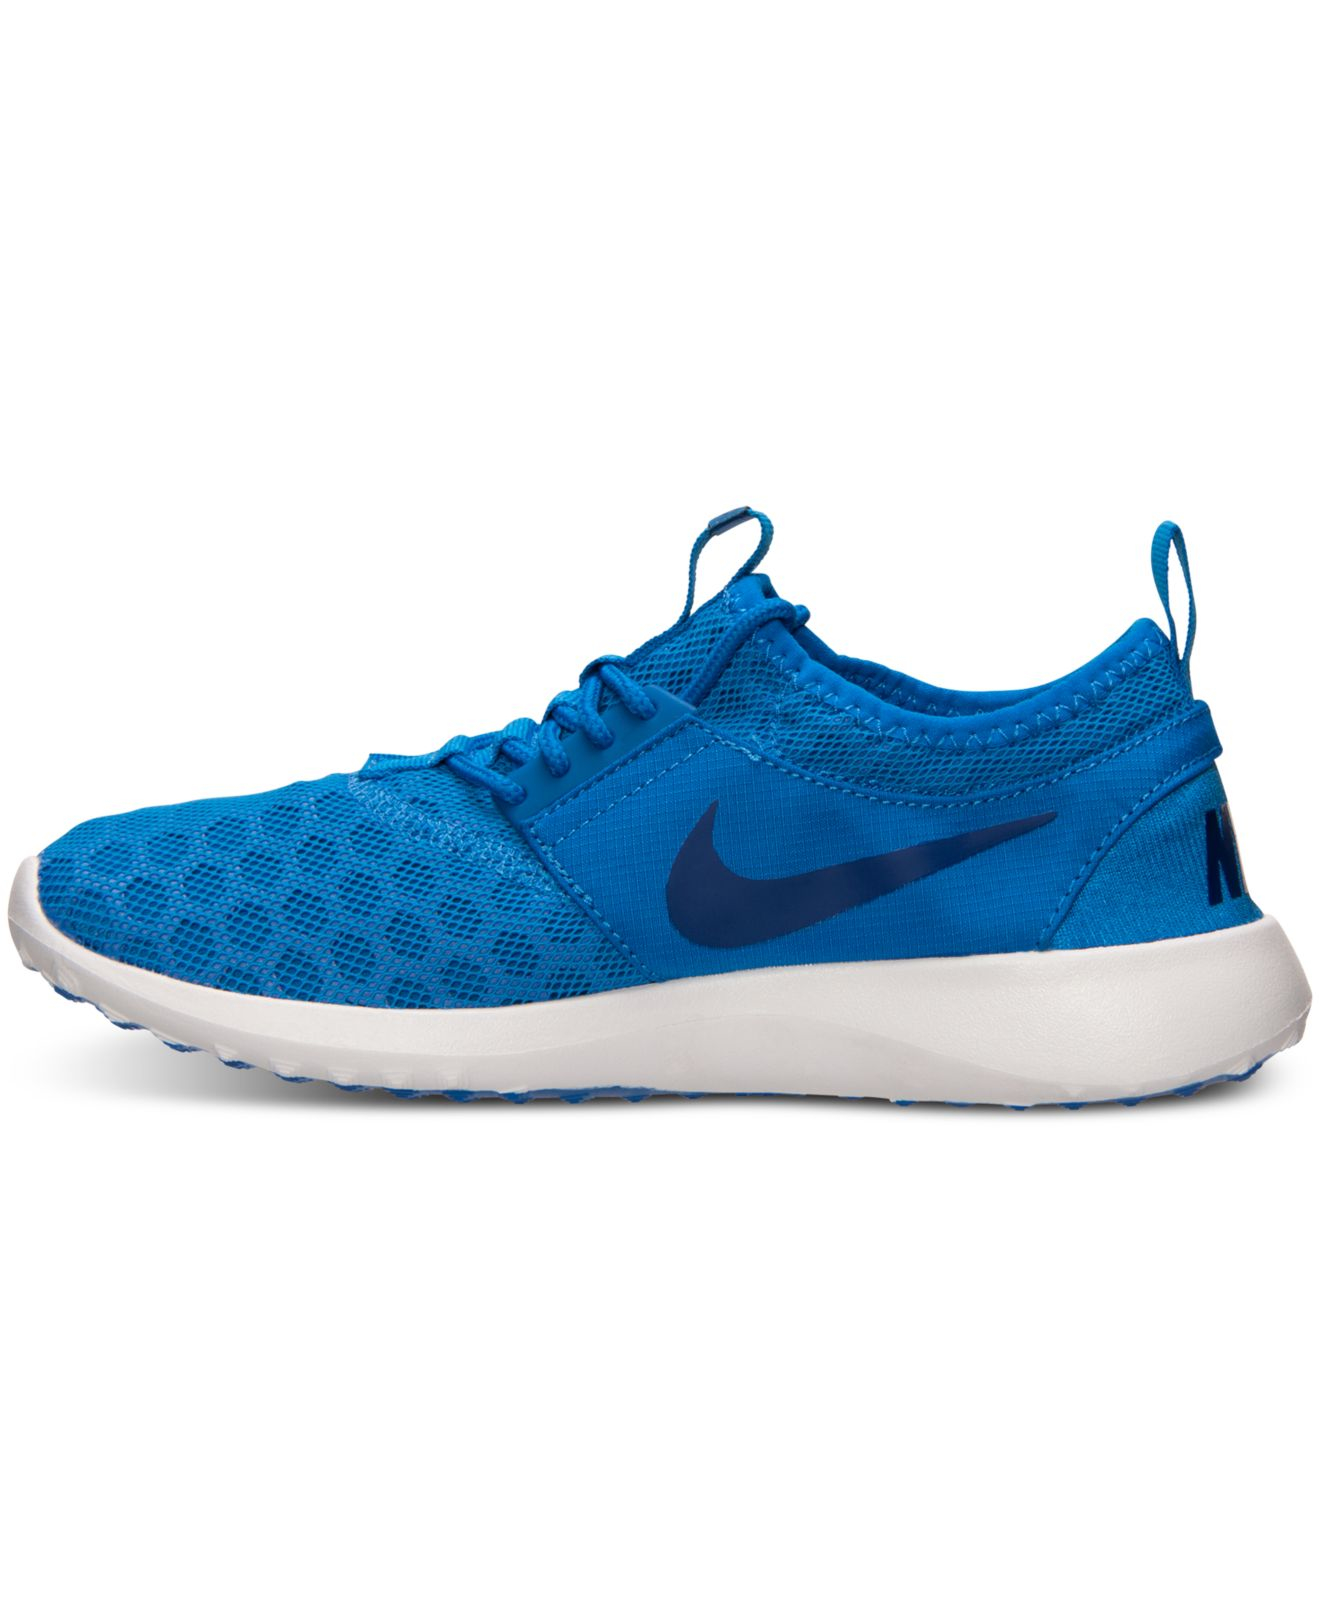 on sale db1f2 06efd nike -soardeep-royal-bluewhit-womens-juvenate-casual-sneakers-from-finish-line-blue-product-3-339325750-normal.jpeg